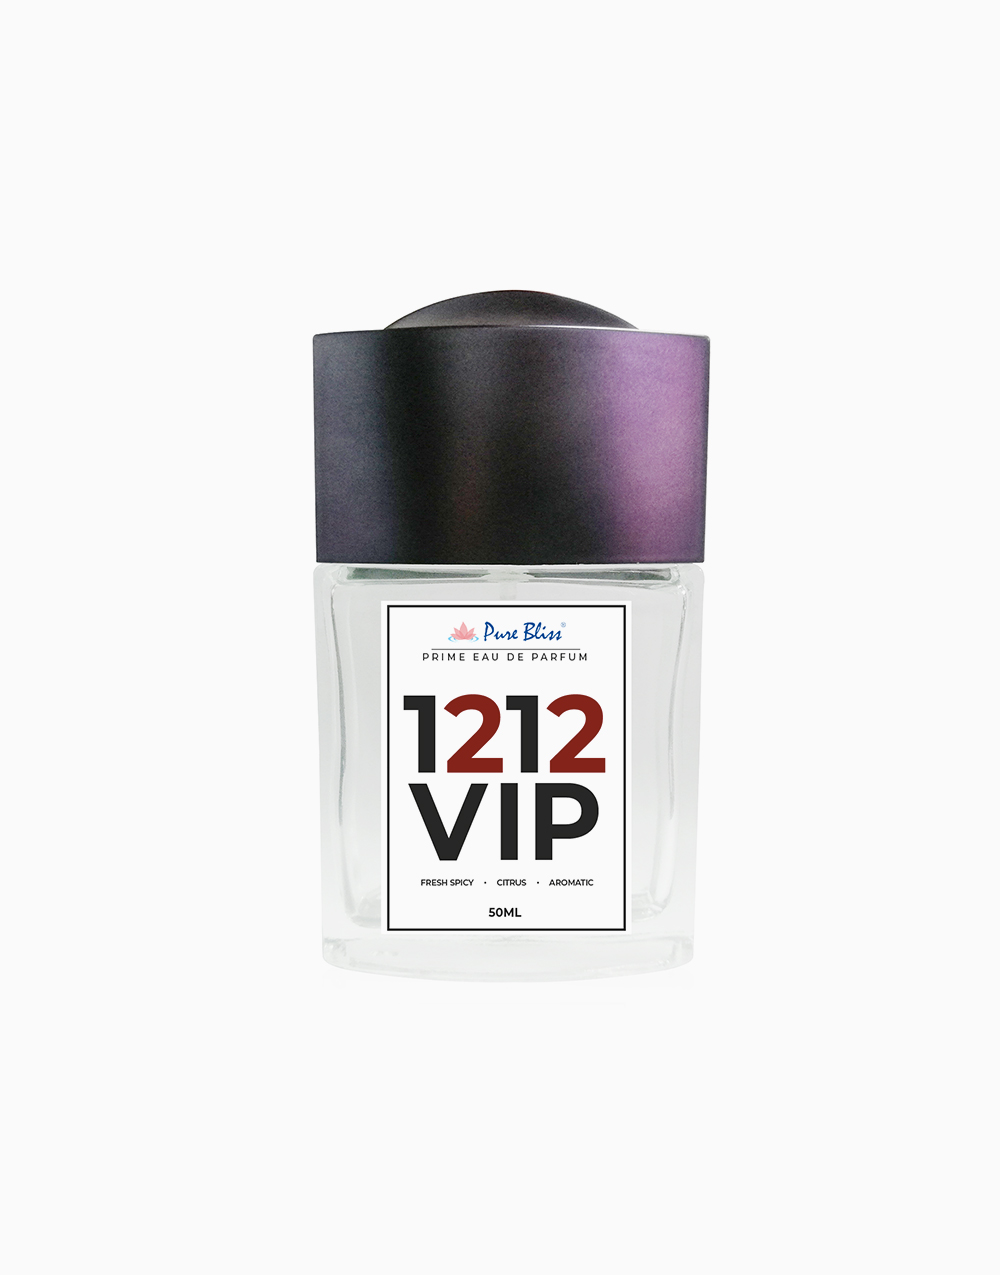 1212 VIP Prime Eau de Parfum (50ml) by Pure Bliss